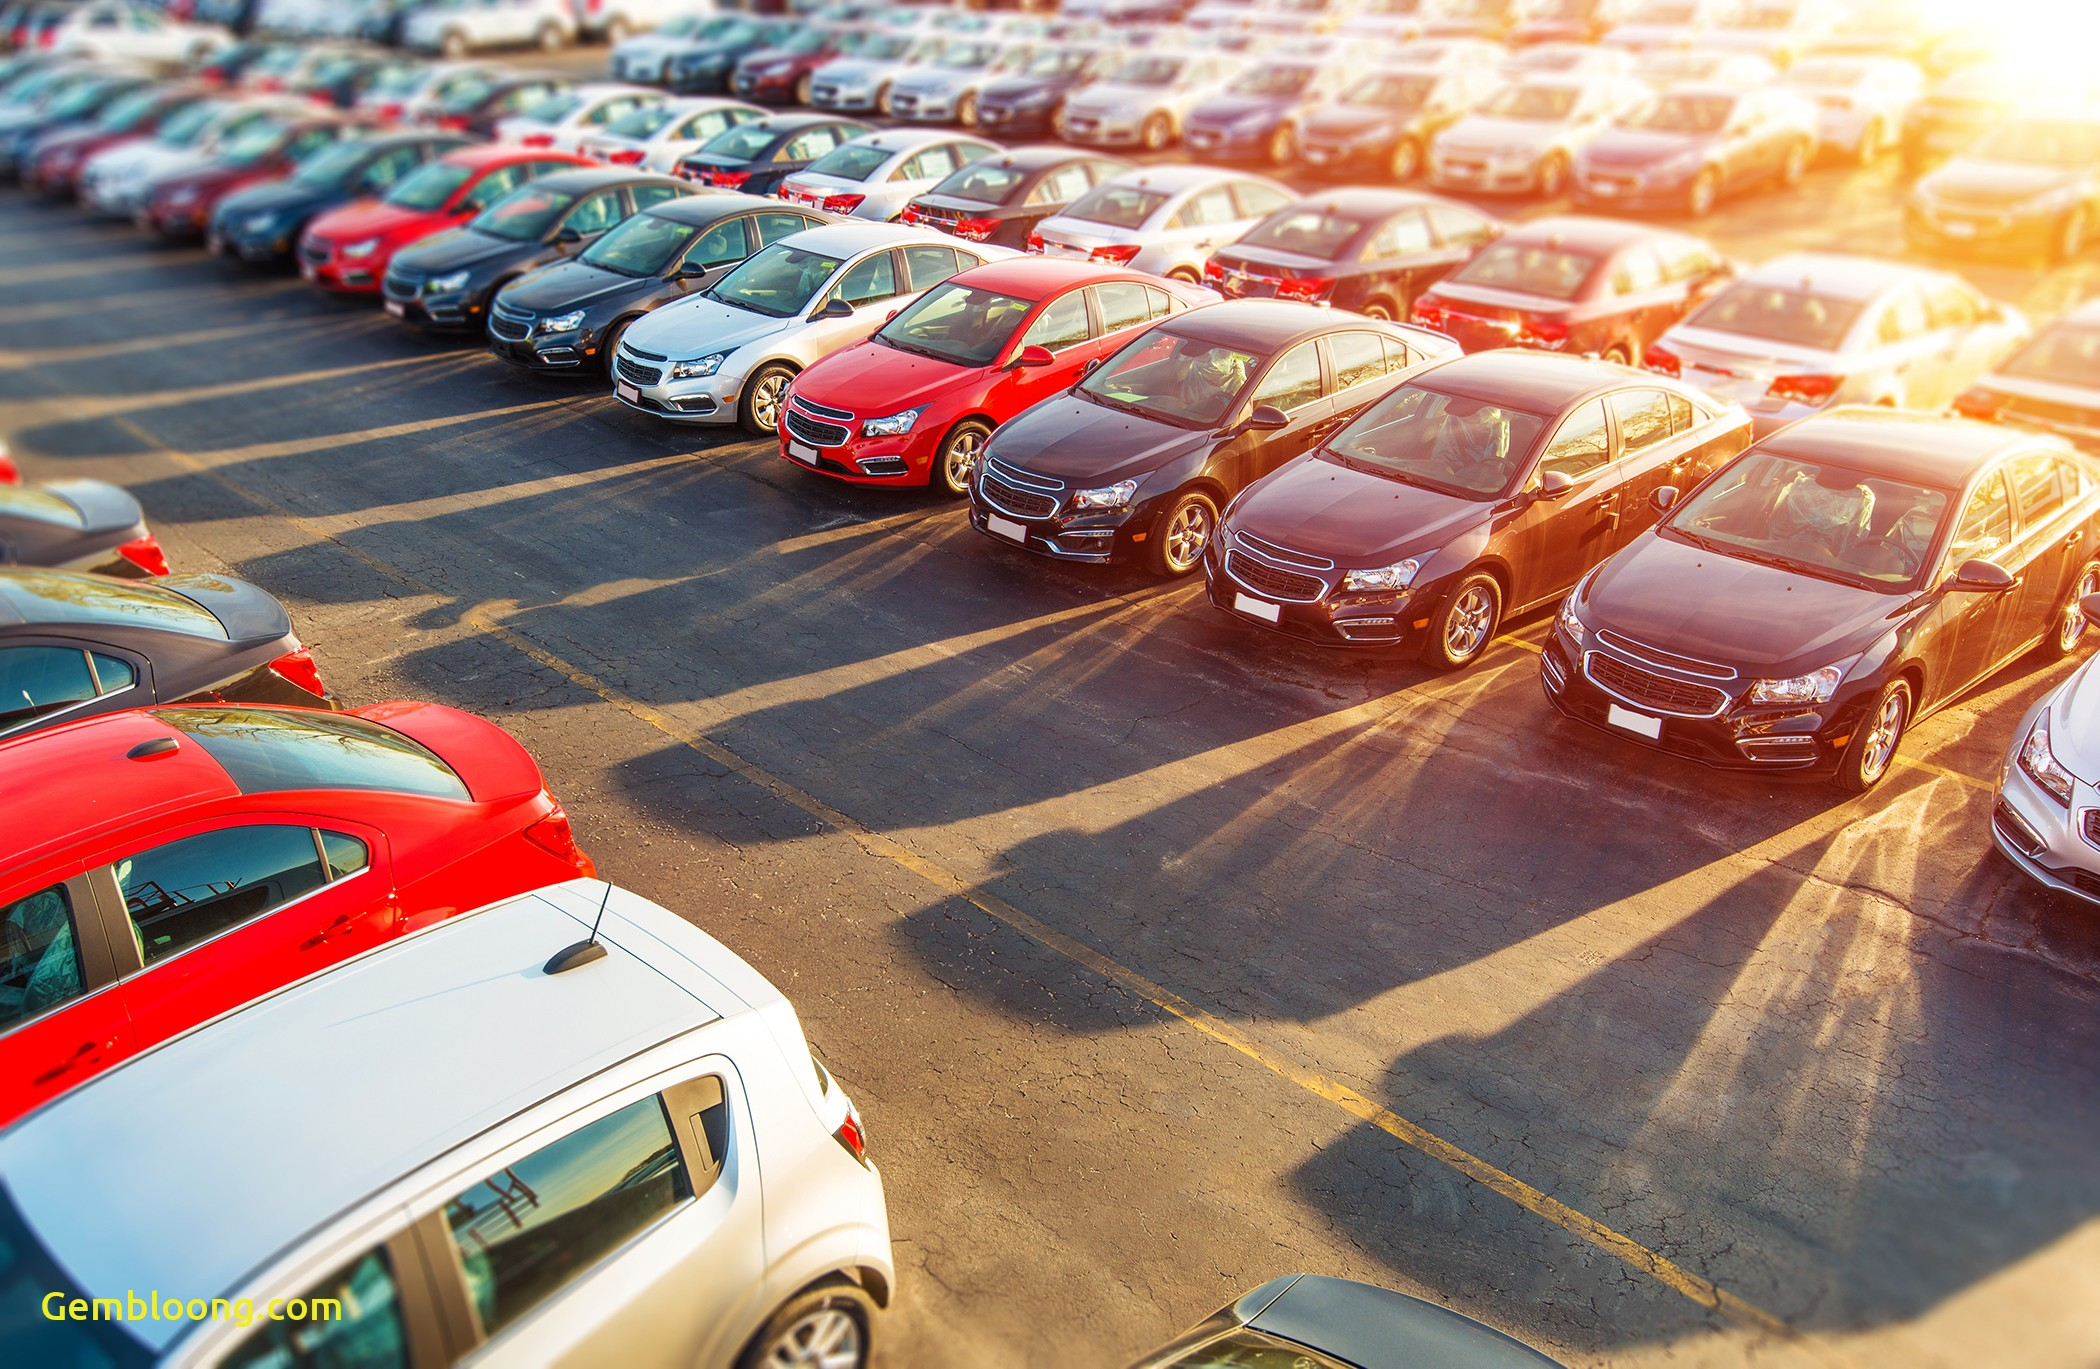 Rental Cars for Sale Near Me Fresh How to Negotiate Car Price at A Dealership Money